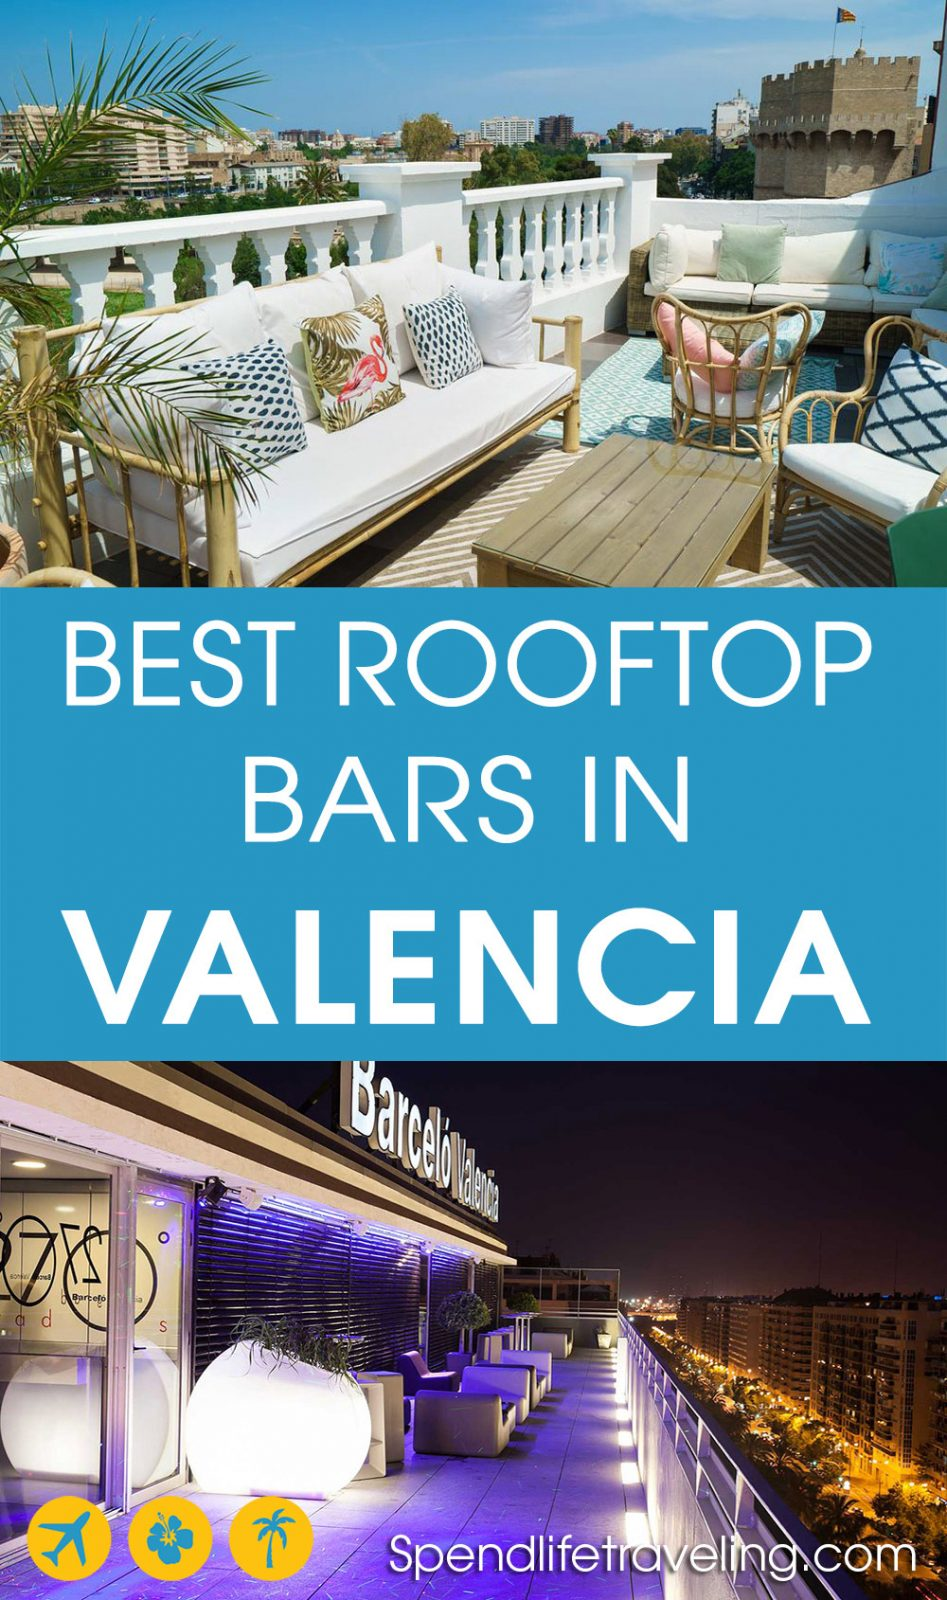 Valencia with its great weather and historical buildings is a perfect place for rooftop bars. Check out this list of the best rooftop bars in Valencia. Map included.